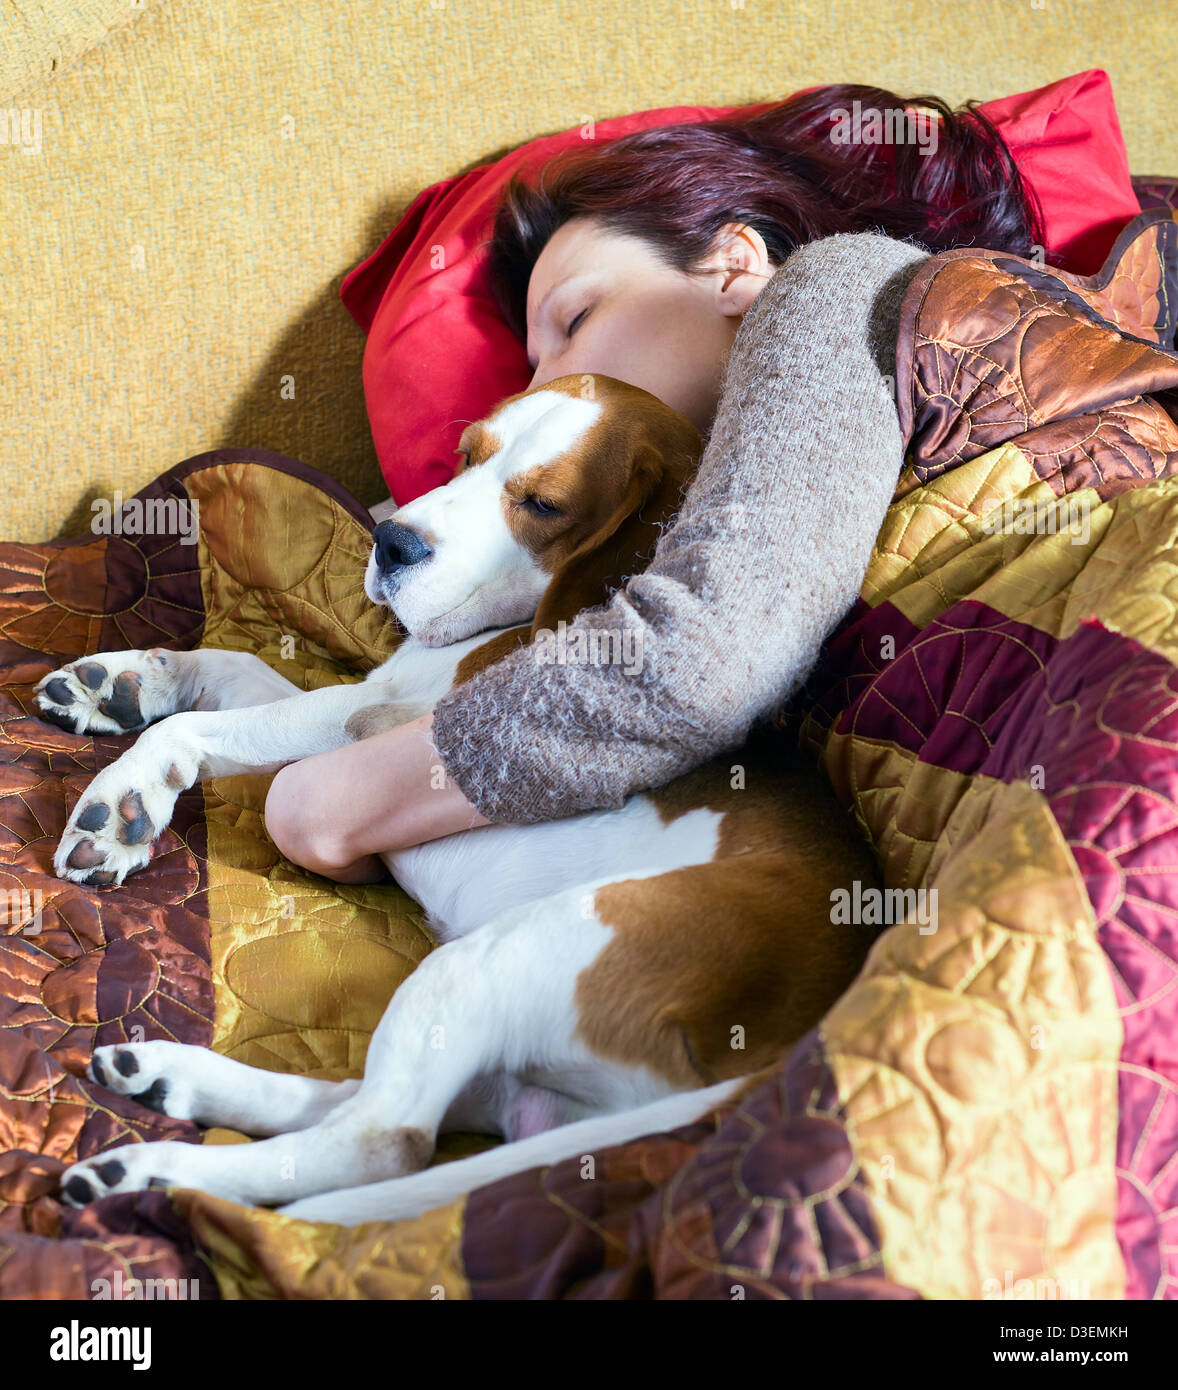 The sleeping woman and its dog - Stock Image